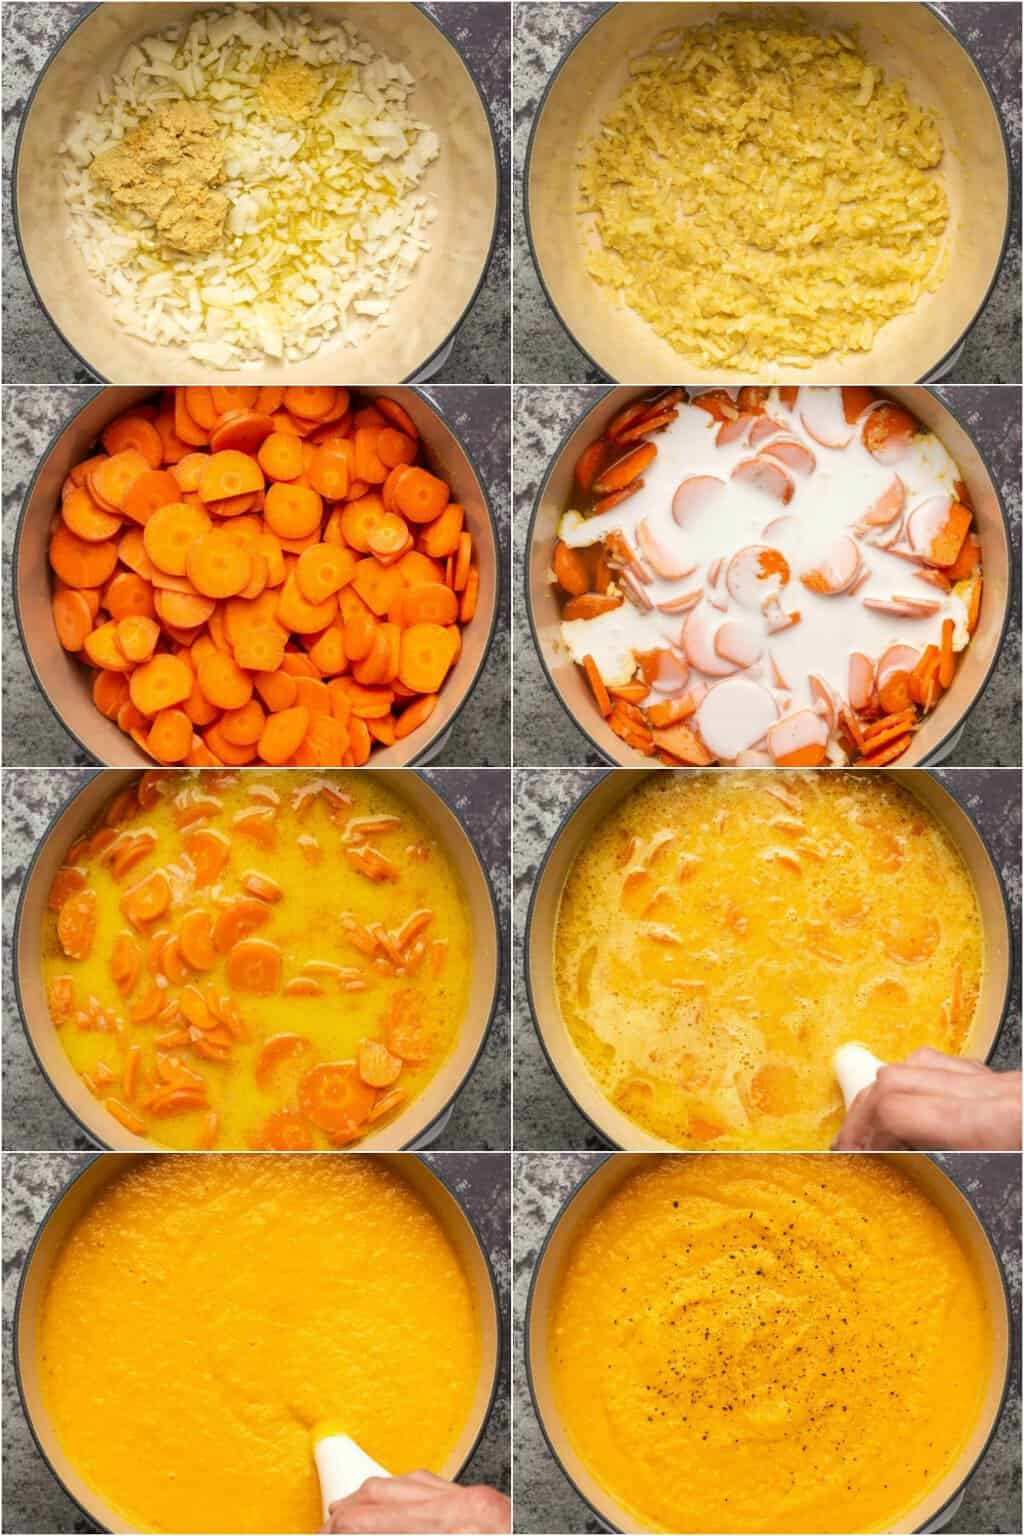 Step by step process photo collage of making vegan carrot ginger soup.